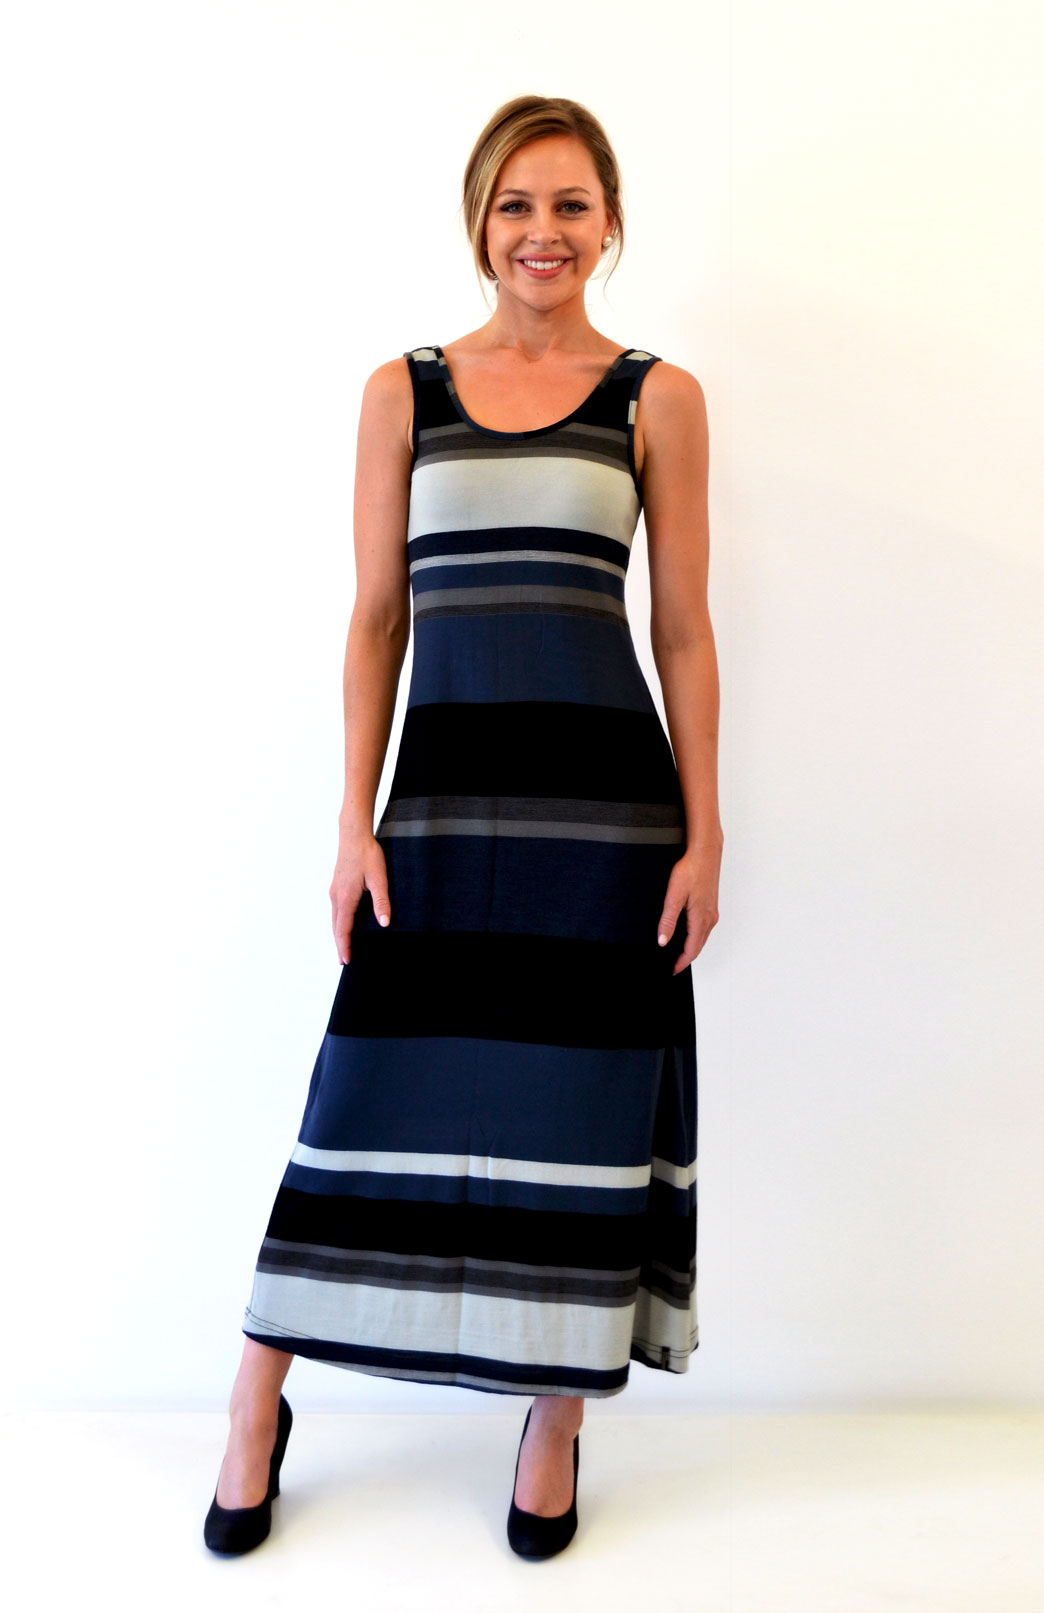 Maxi Dress - Multi Striped - Women's Merino Wool Black and Grey Multi Striped Maxi Dress with Scoop Neckline - Smitten Merino Tasmania Australia